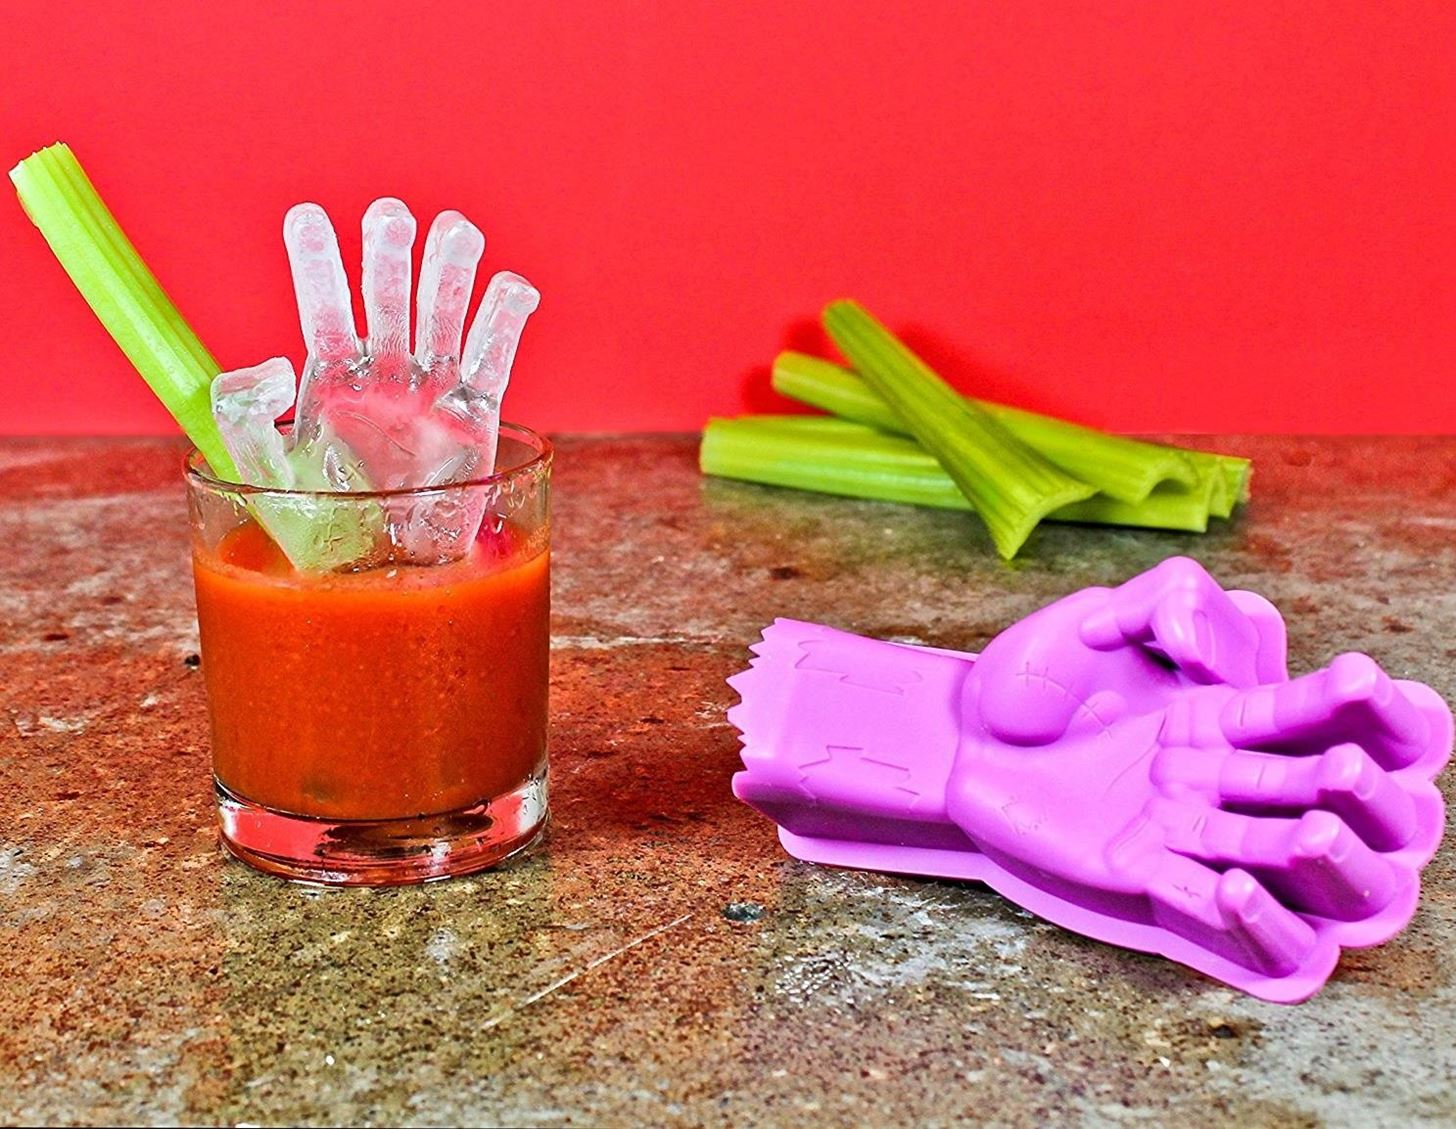 Halloween Food Hacks: Make an Icy-Cold, Bloody Hand